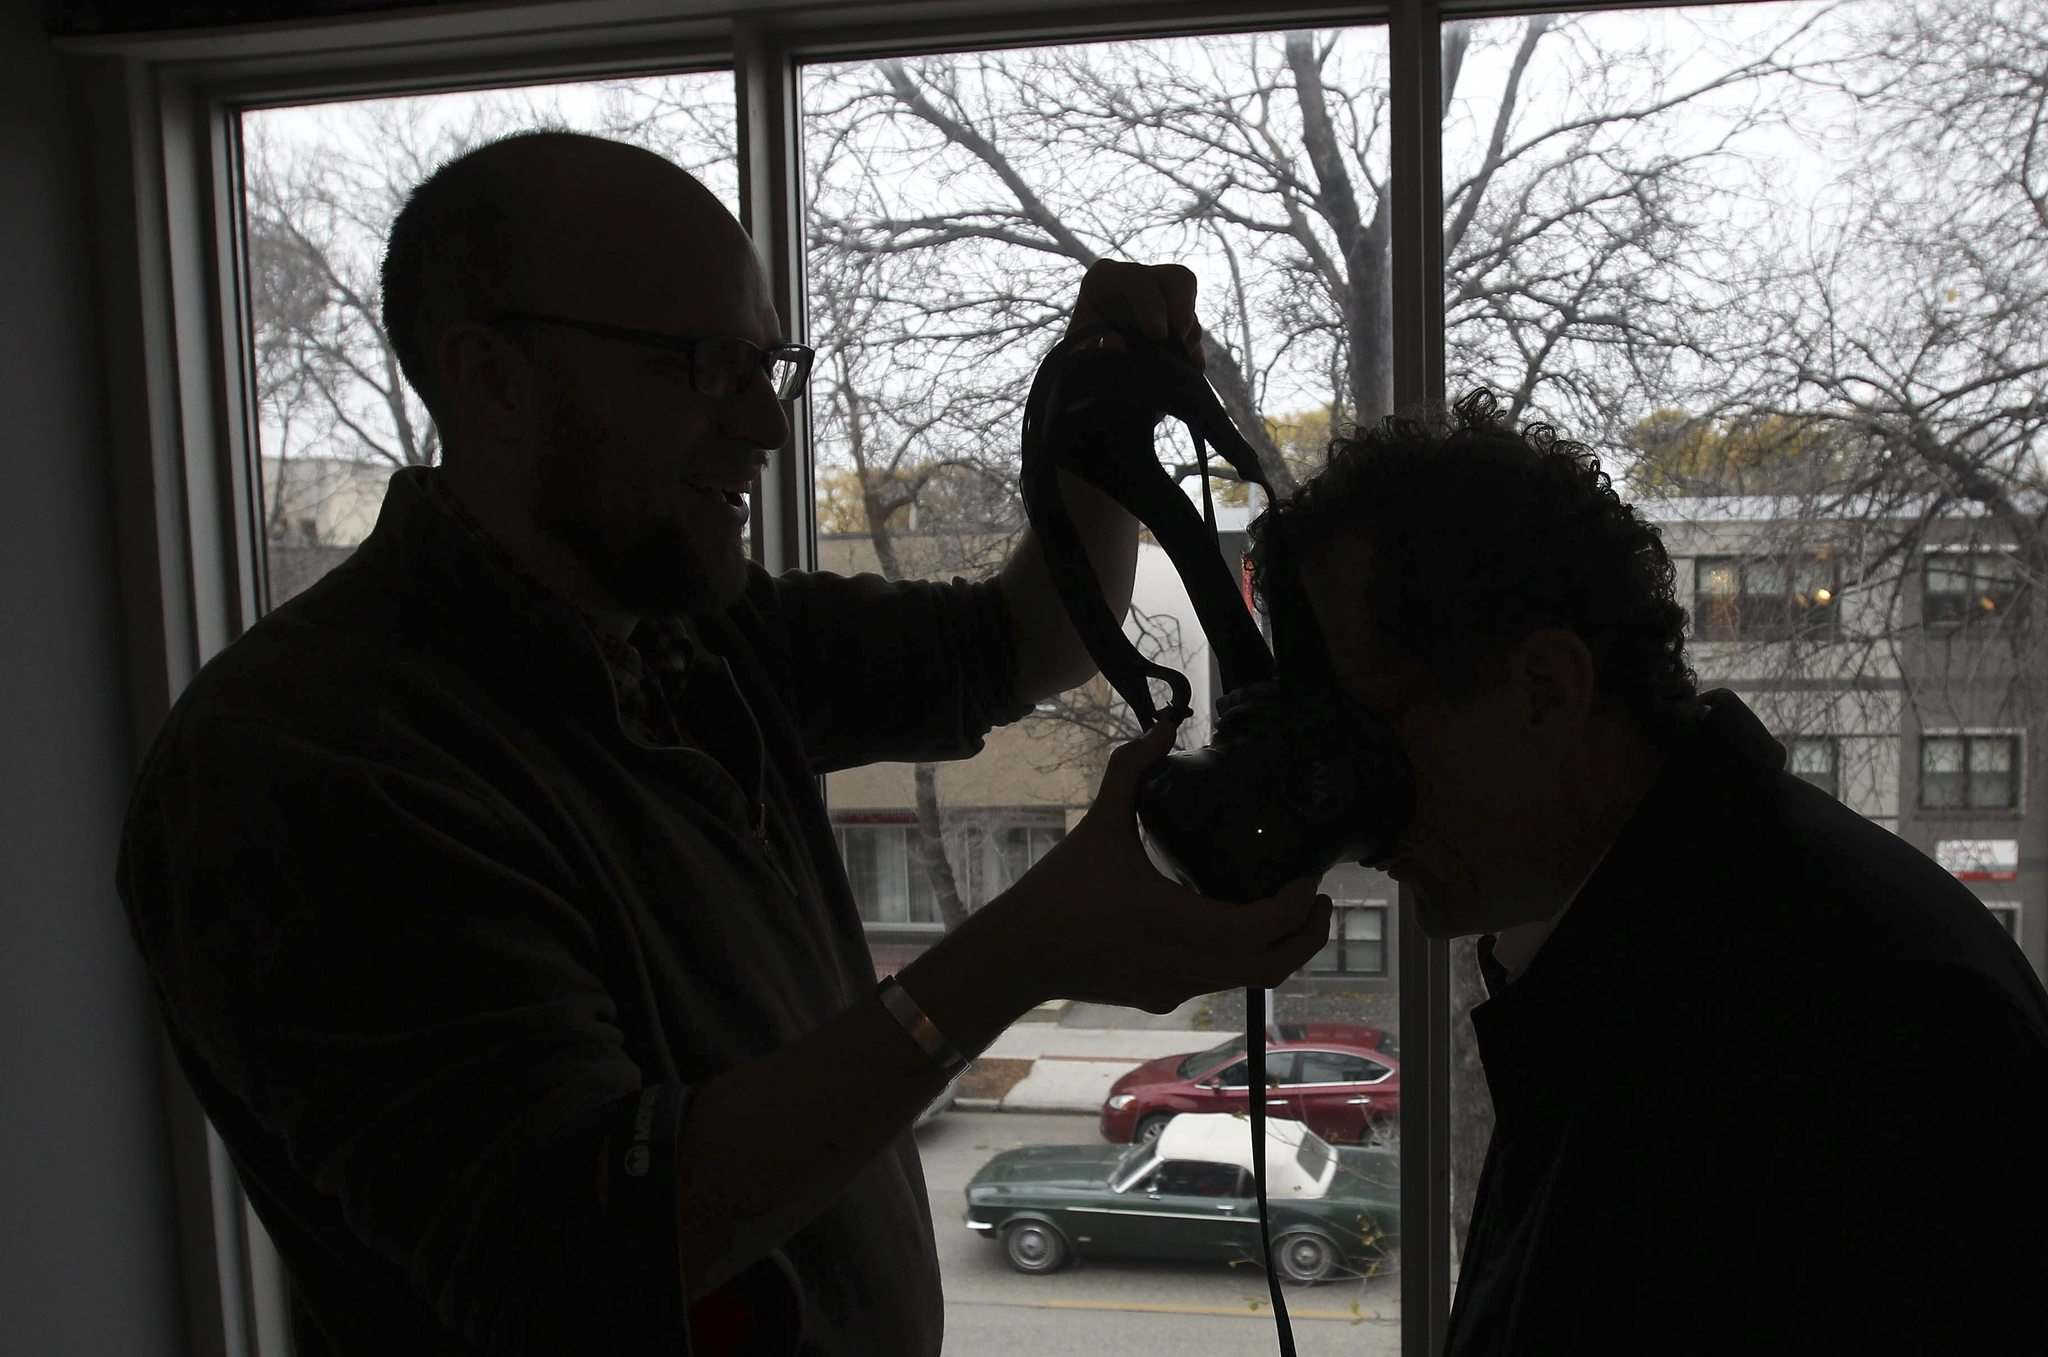 JOE BRYKSA / WINNIPEG FREE PRESS</p><p>Free Press reporter Martin Cash gets fitted with a headset at Winnipeg's first virtual-reality arcade, the Portal, with the help of owner Chris Hall.</p></p>